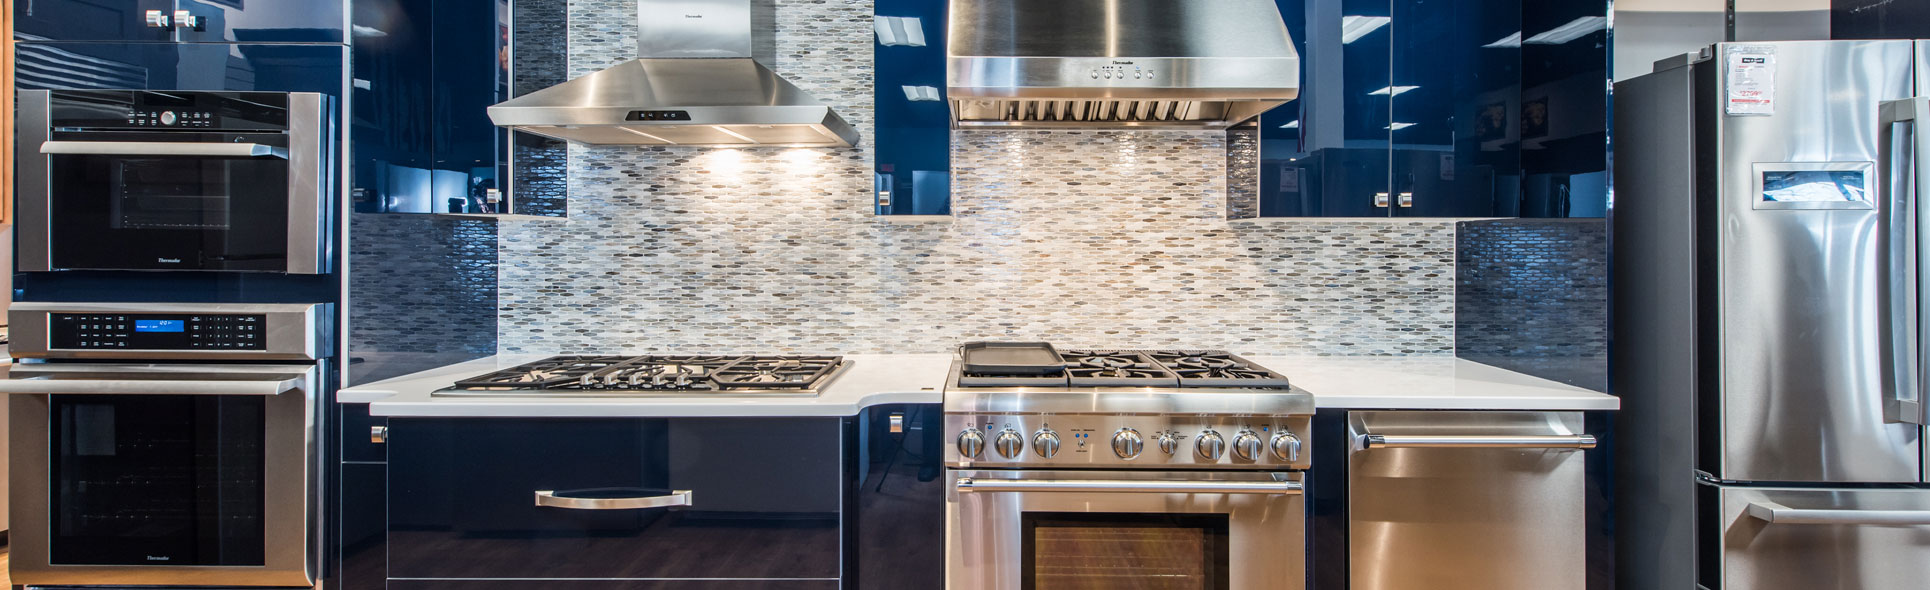 Lifestyle Kitchen Design From Thermador